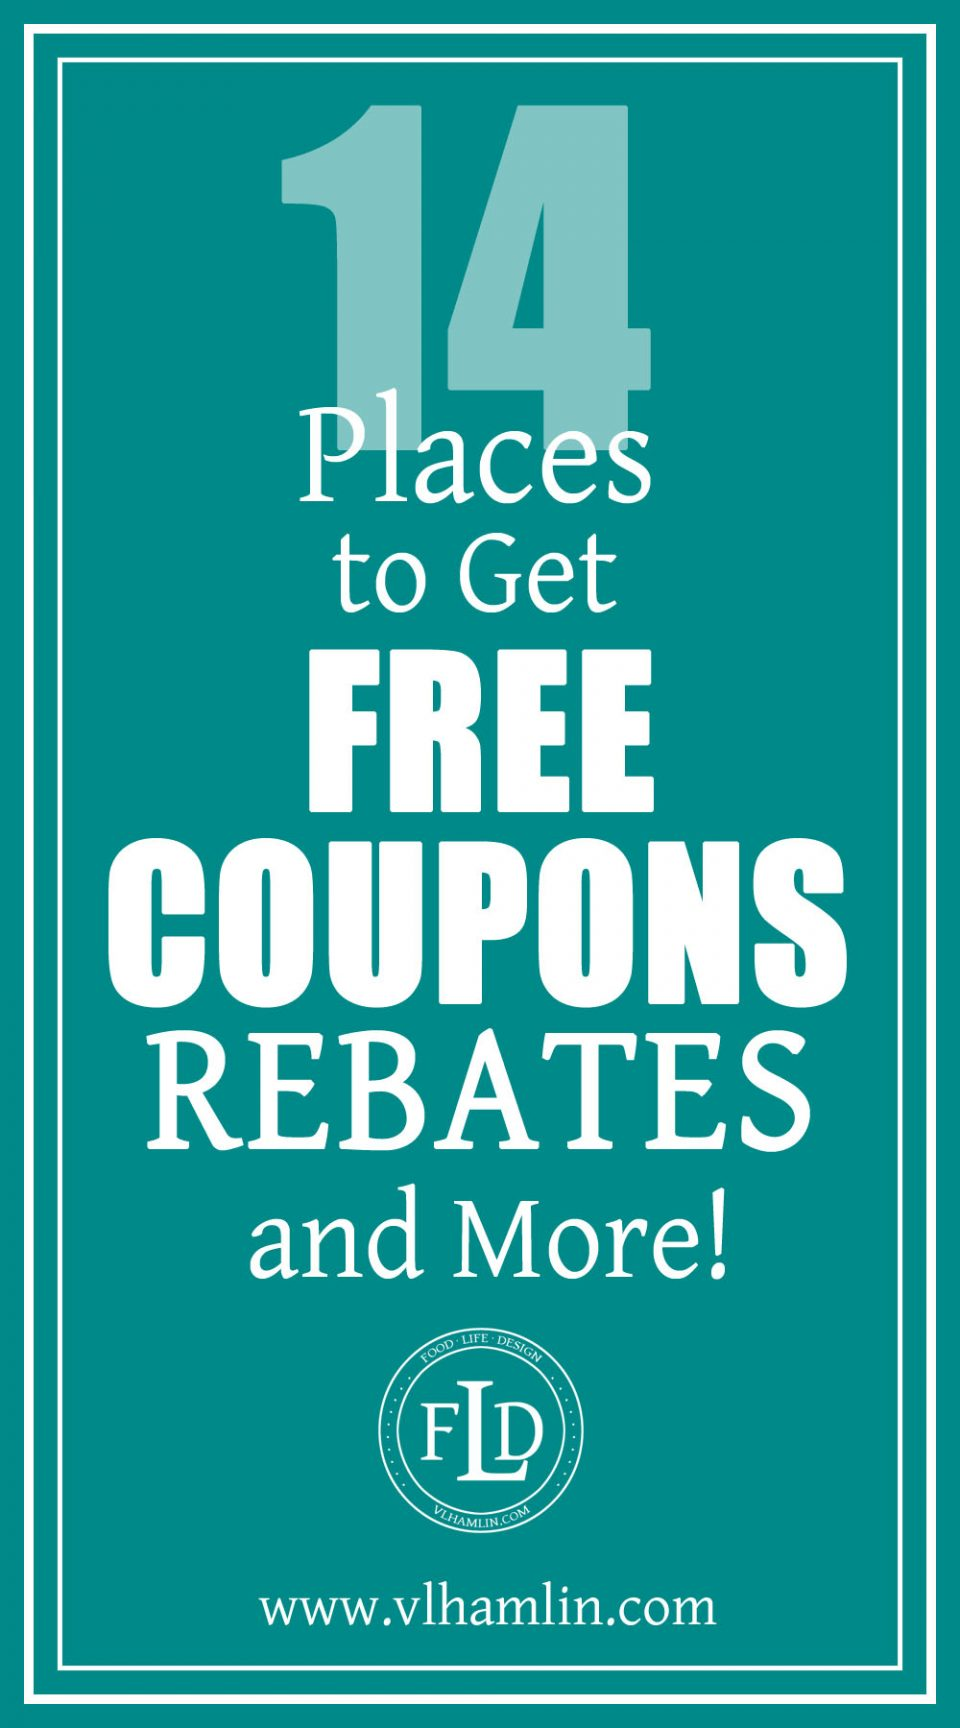 14 Places to Get Free Coupons Rebates and More